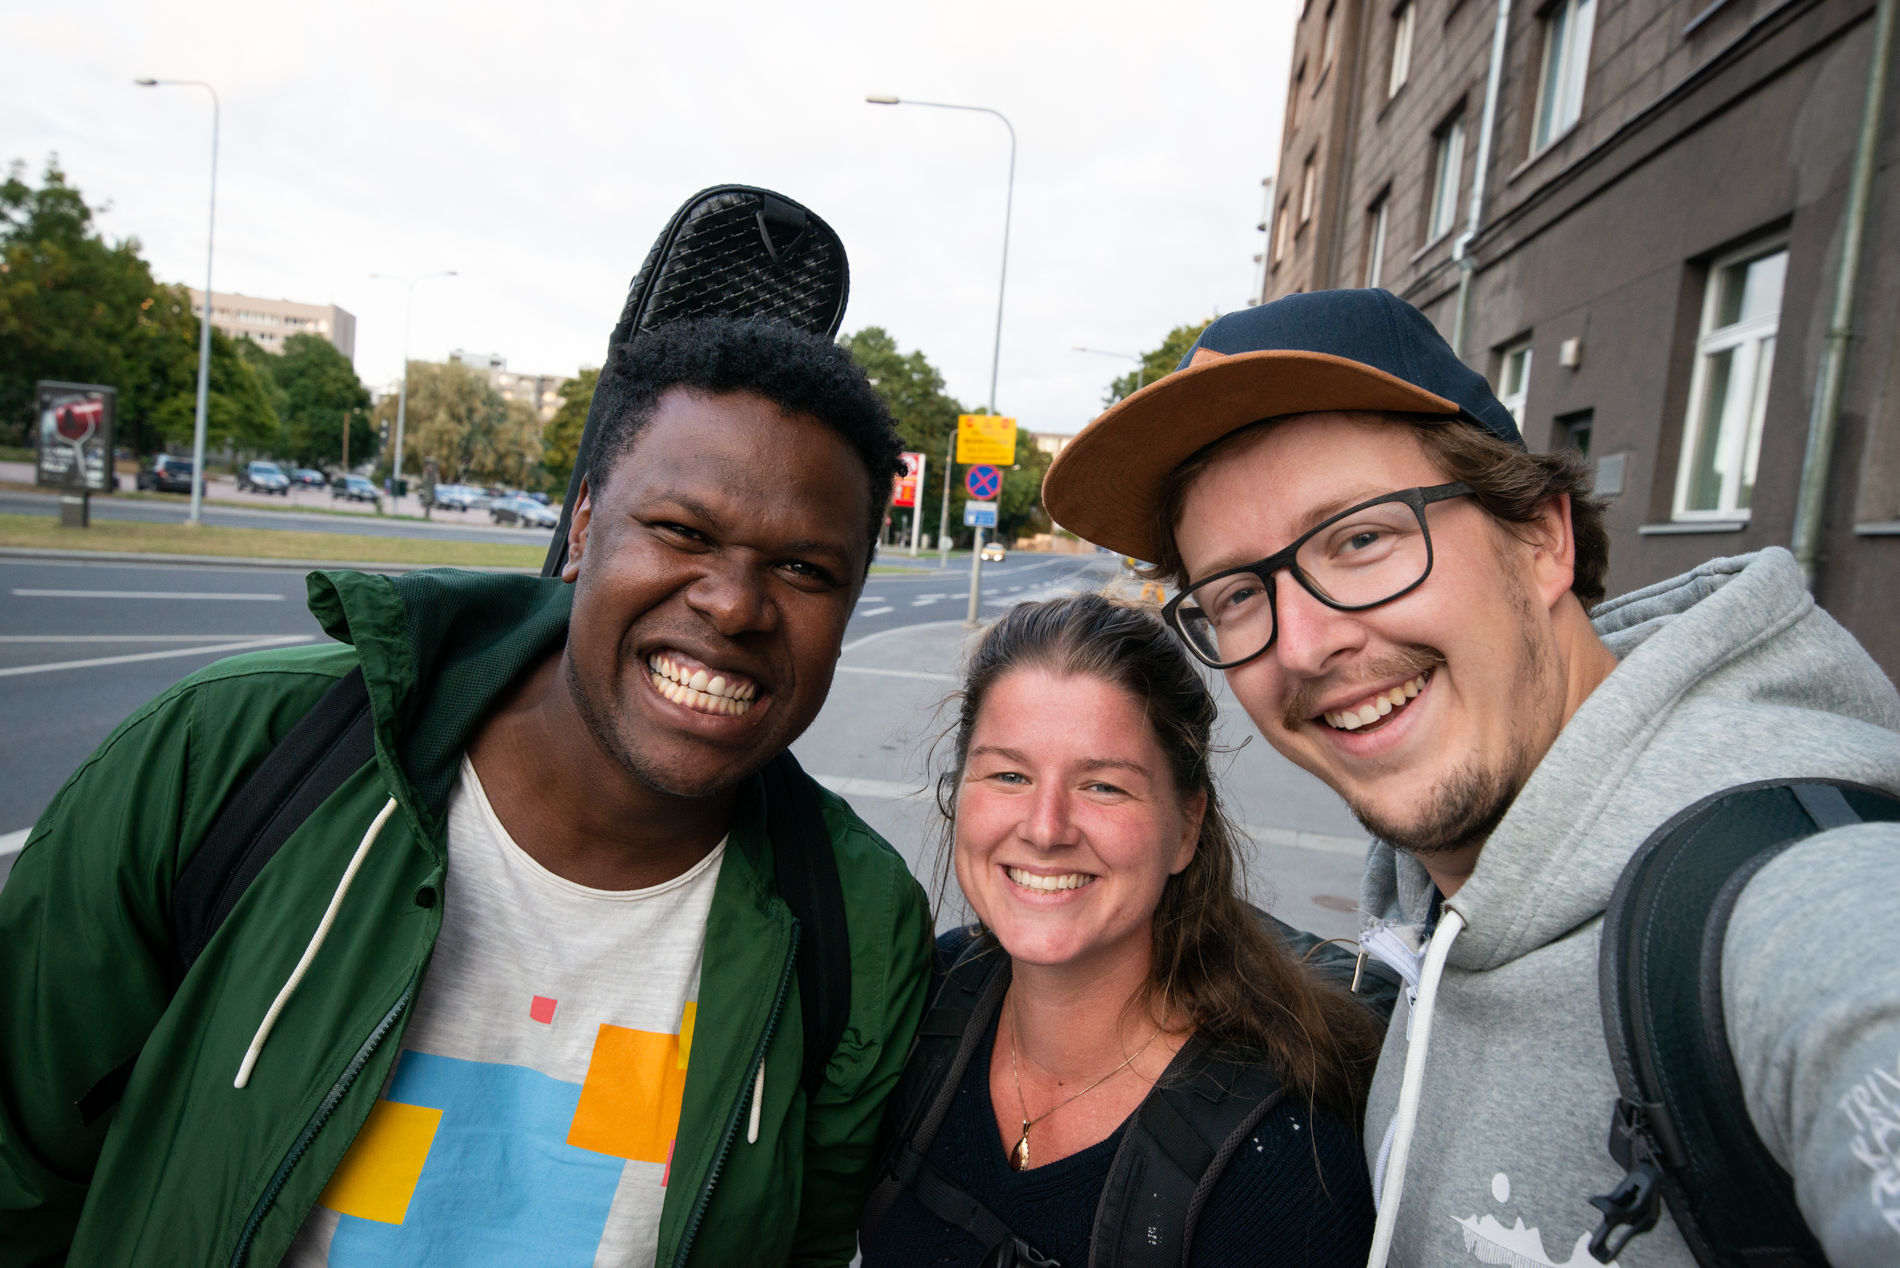 Flavio with his biggest smile, together with Ellis and me in Tallinn, Estonia.